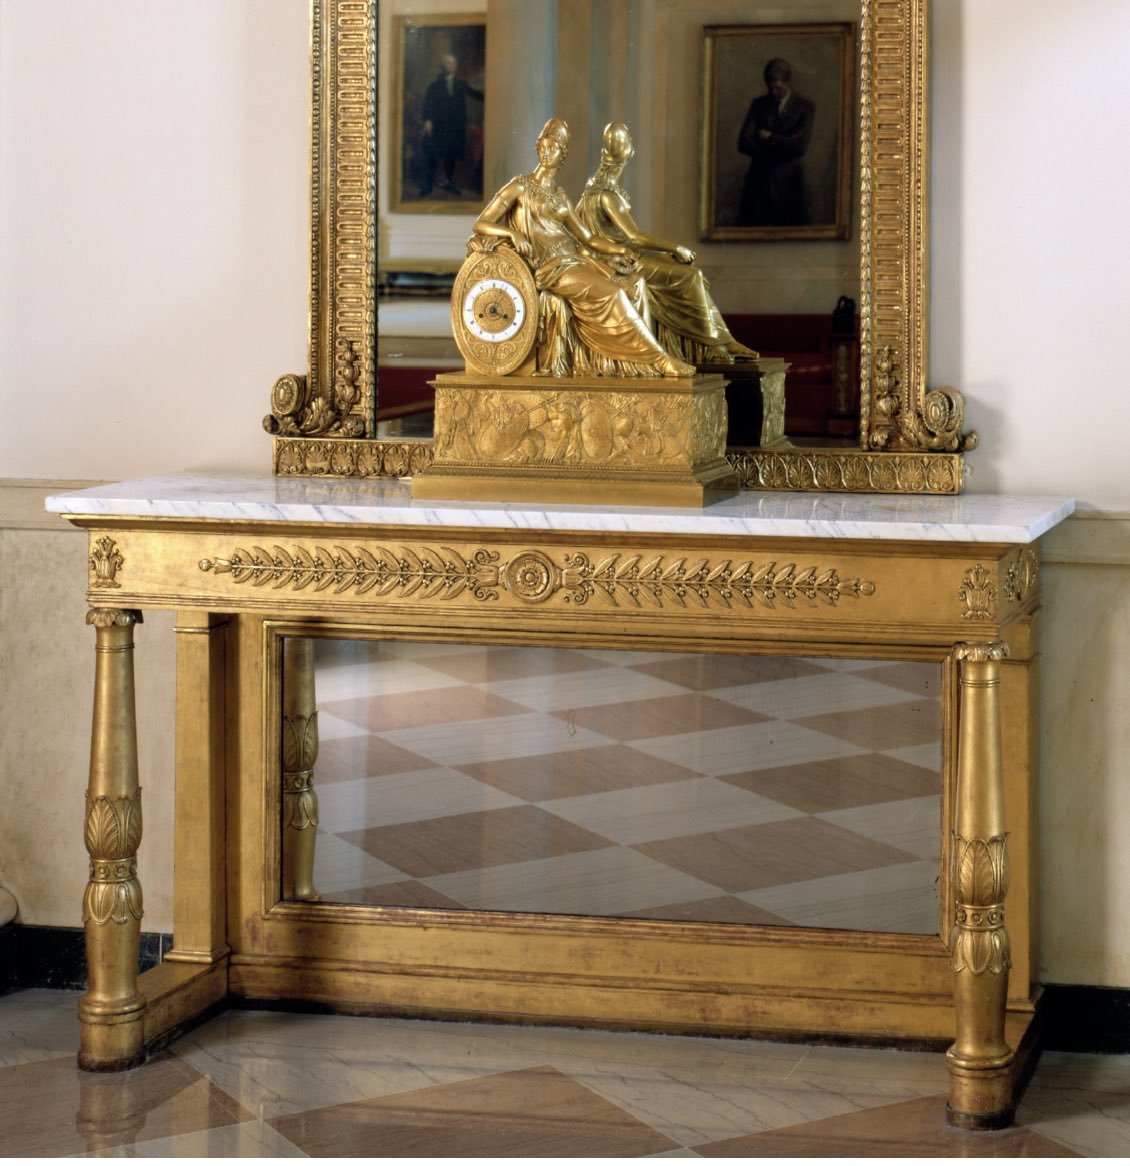 My Friday Favorite from the White House collection is this Bellangé pier table shown here in the Entrance Hall. Acquired by President Monroe, this is the only element of the 53 piece Bellangé suite that has remained in the White House since 1817.